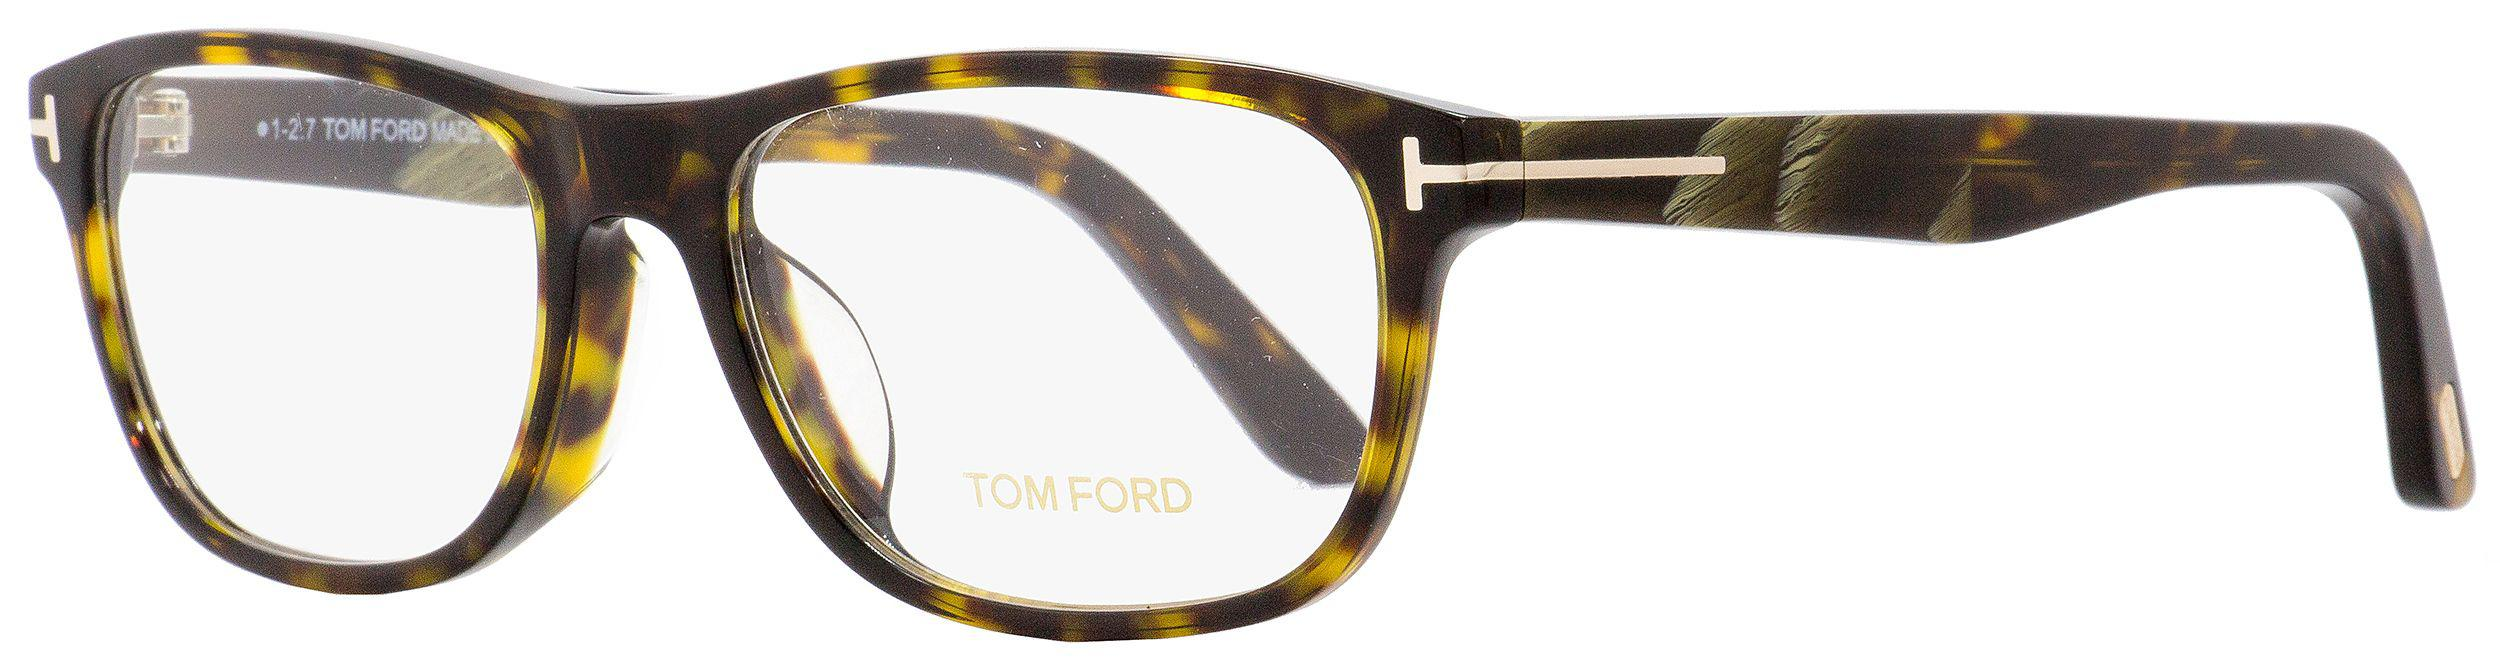 79dc7de6ef Tom Ford - Multicolor Rectangular Eyeglasses Tf5430f 052 Dark Havana horn  56mm Ft5430f for Men. View fullscreen